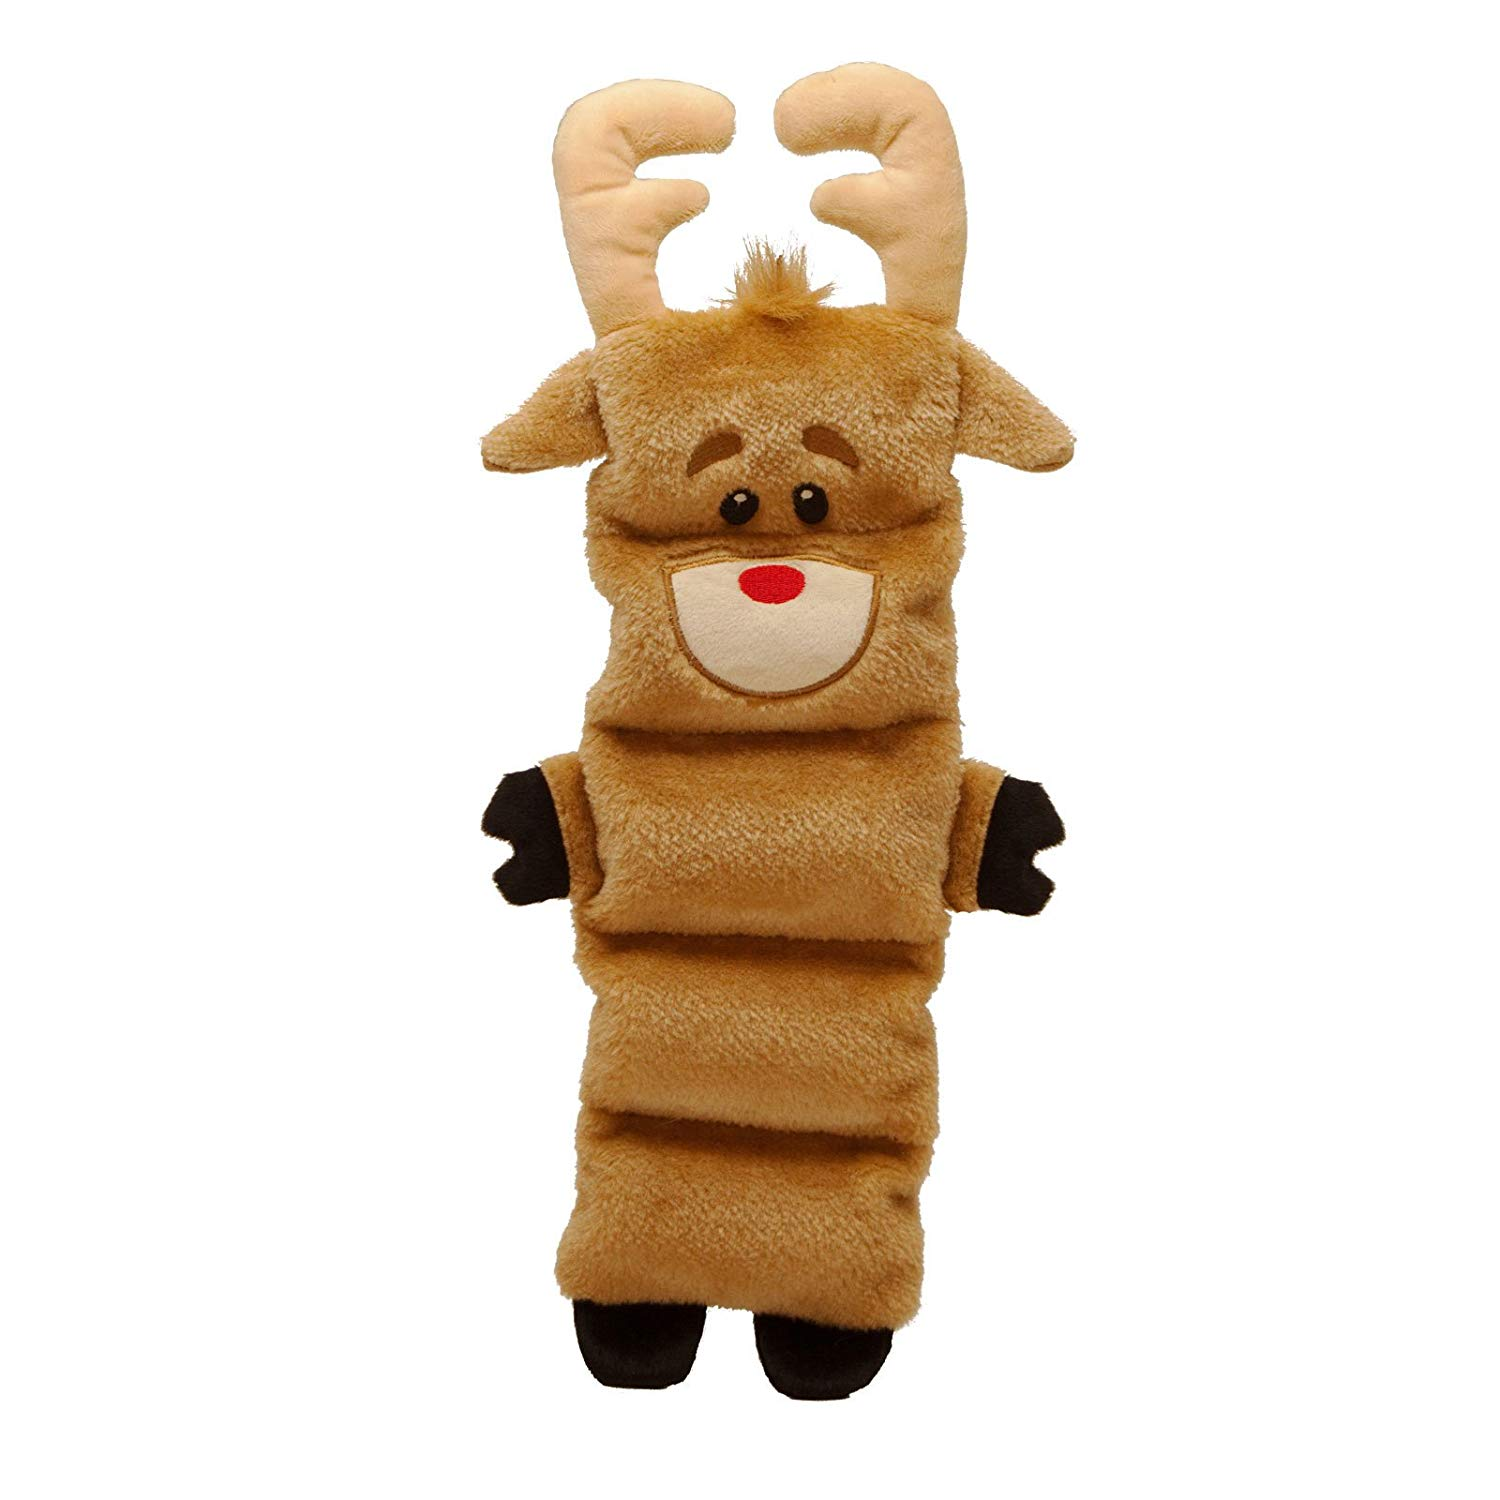 Kyjen 32107 Invincibles Reindeer Squeaking Stuffingless Durable Dog Toy with 5 Squeakers, Brown, Stuffing-less By Outward Hound